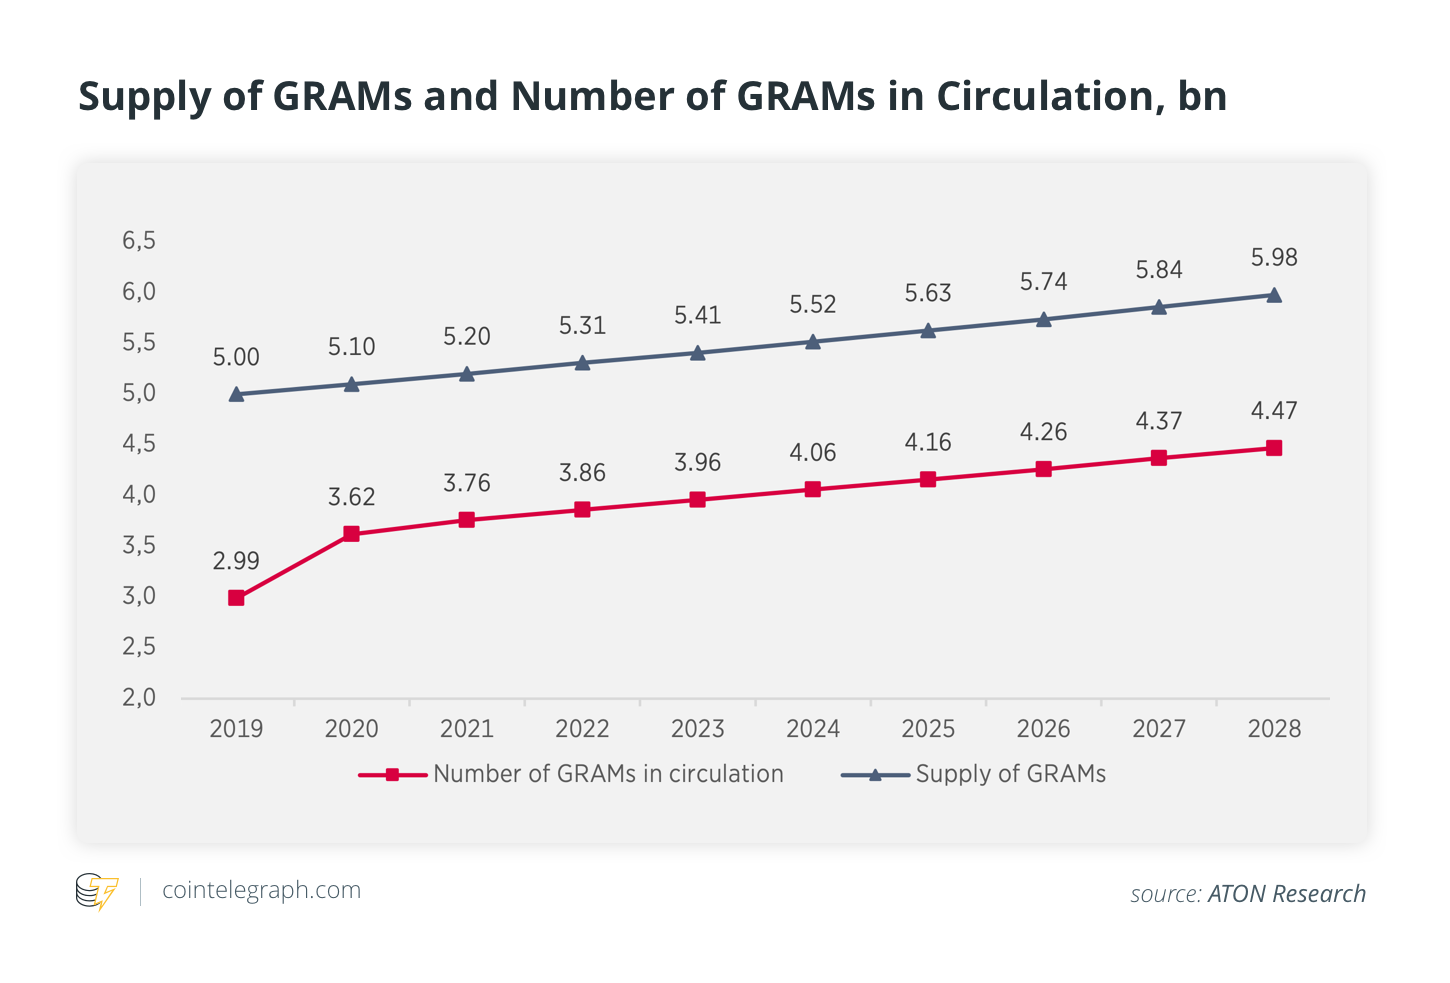 Supply of GRAMs and Number of GRAMs in Circulation, bn